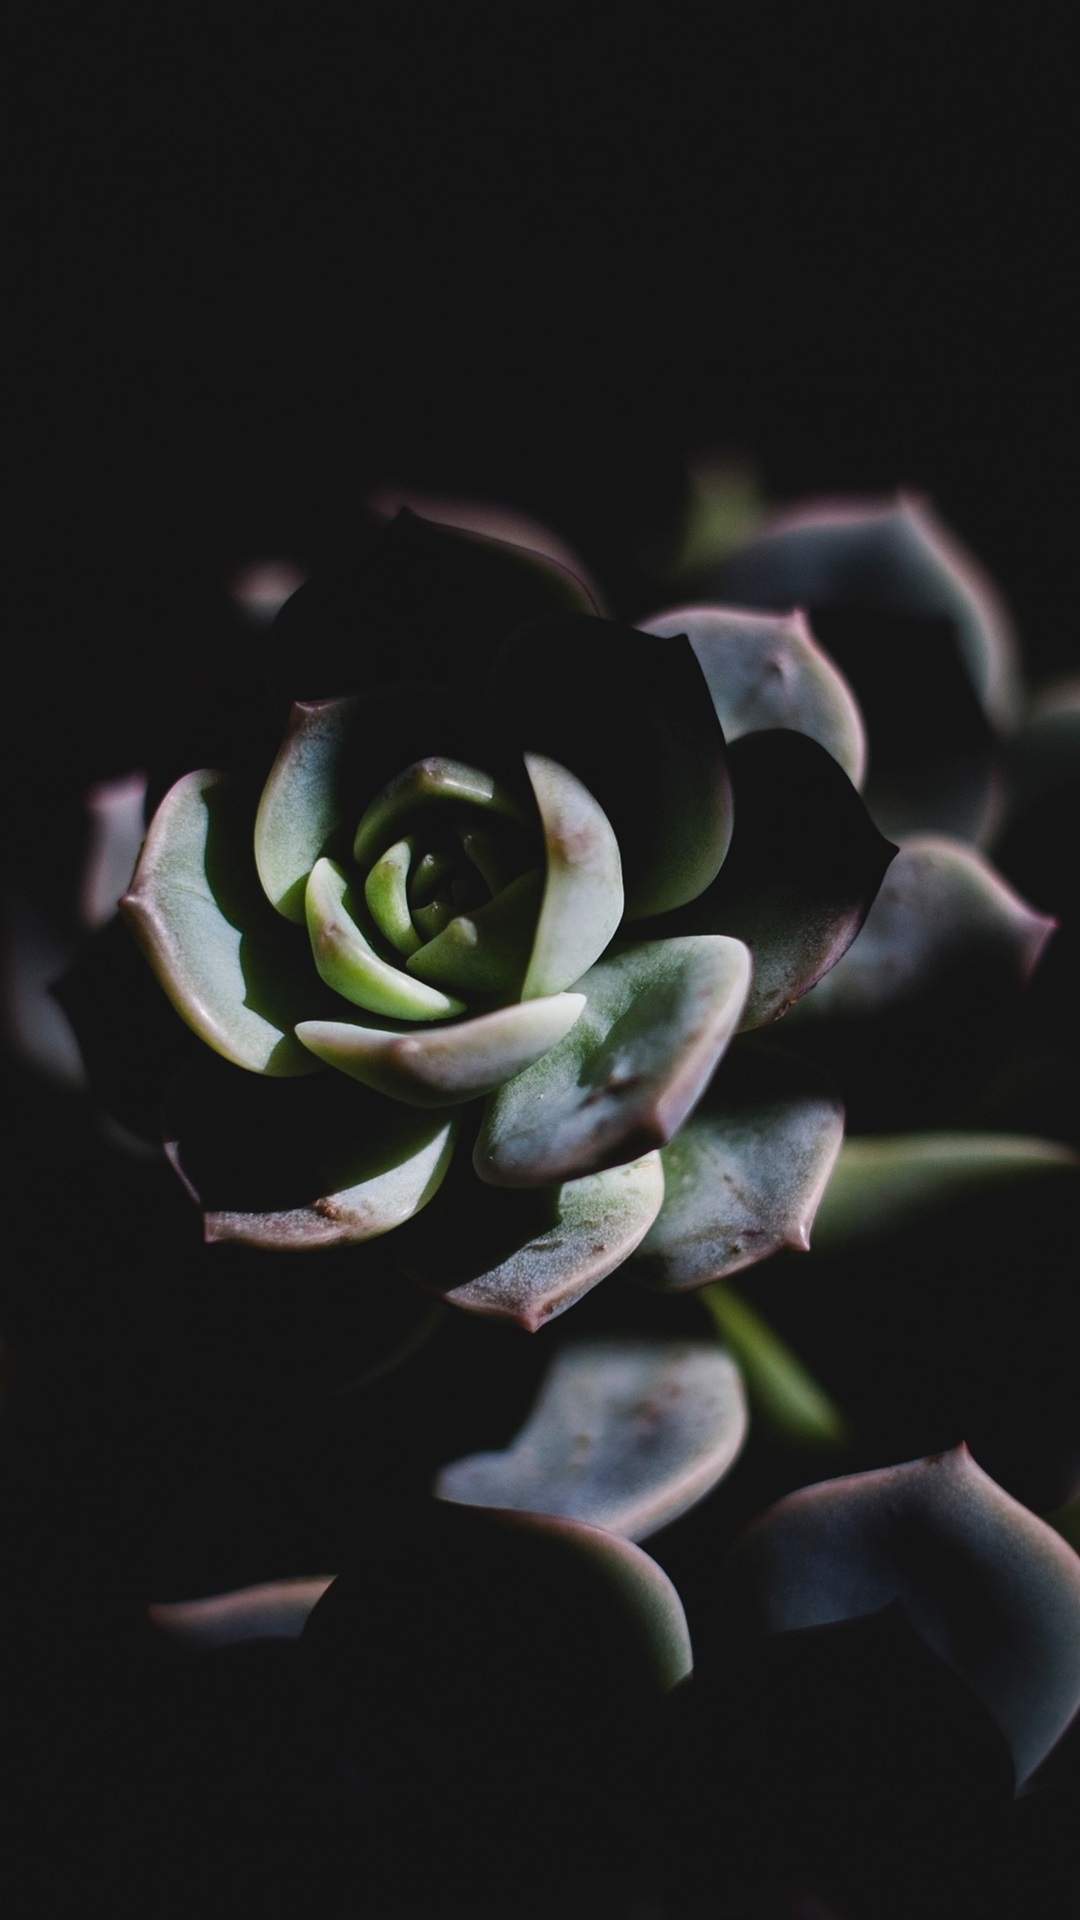 Wallpaper Succulent Plant Darkness 3840x2160 Uhd 4k Picture Image